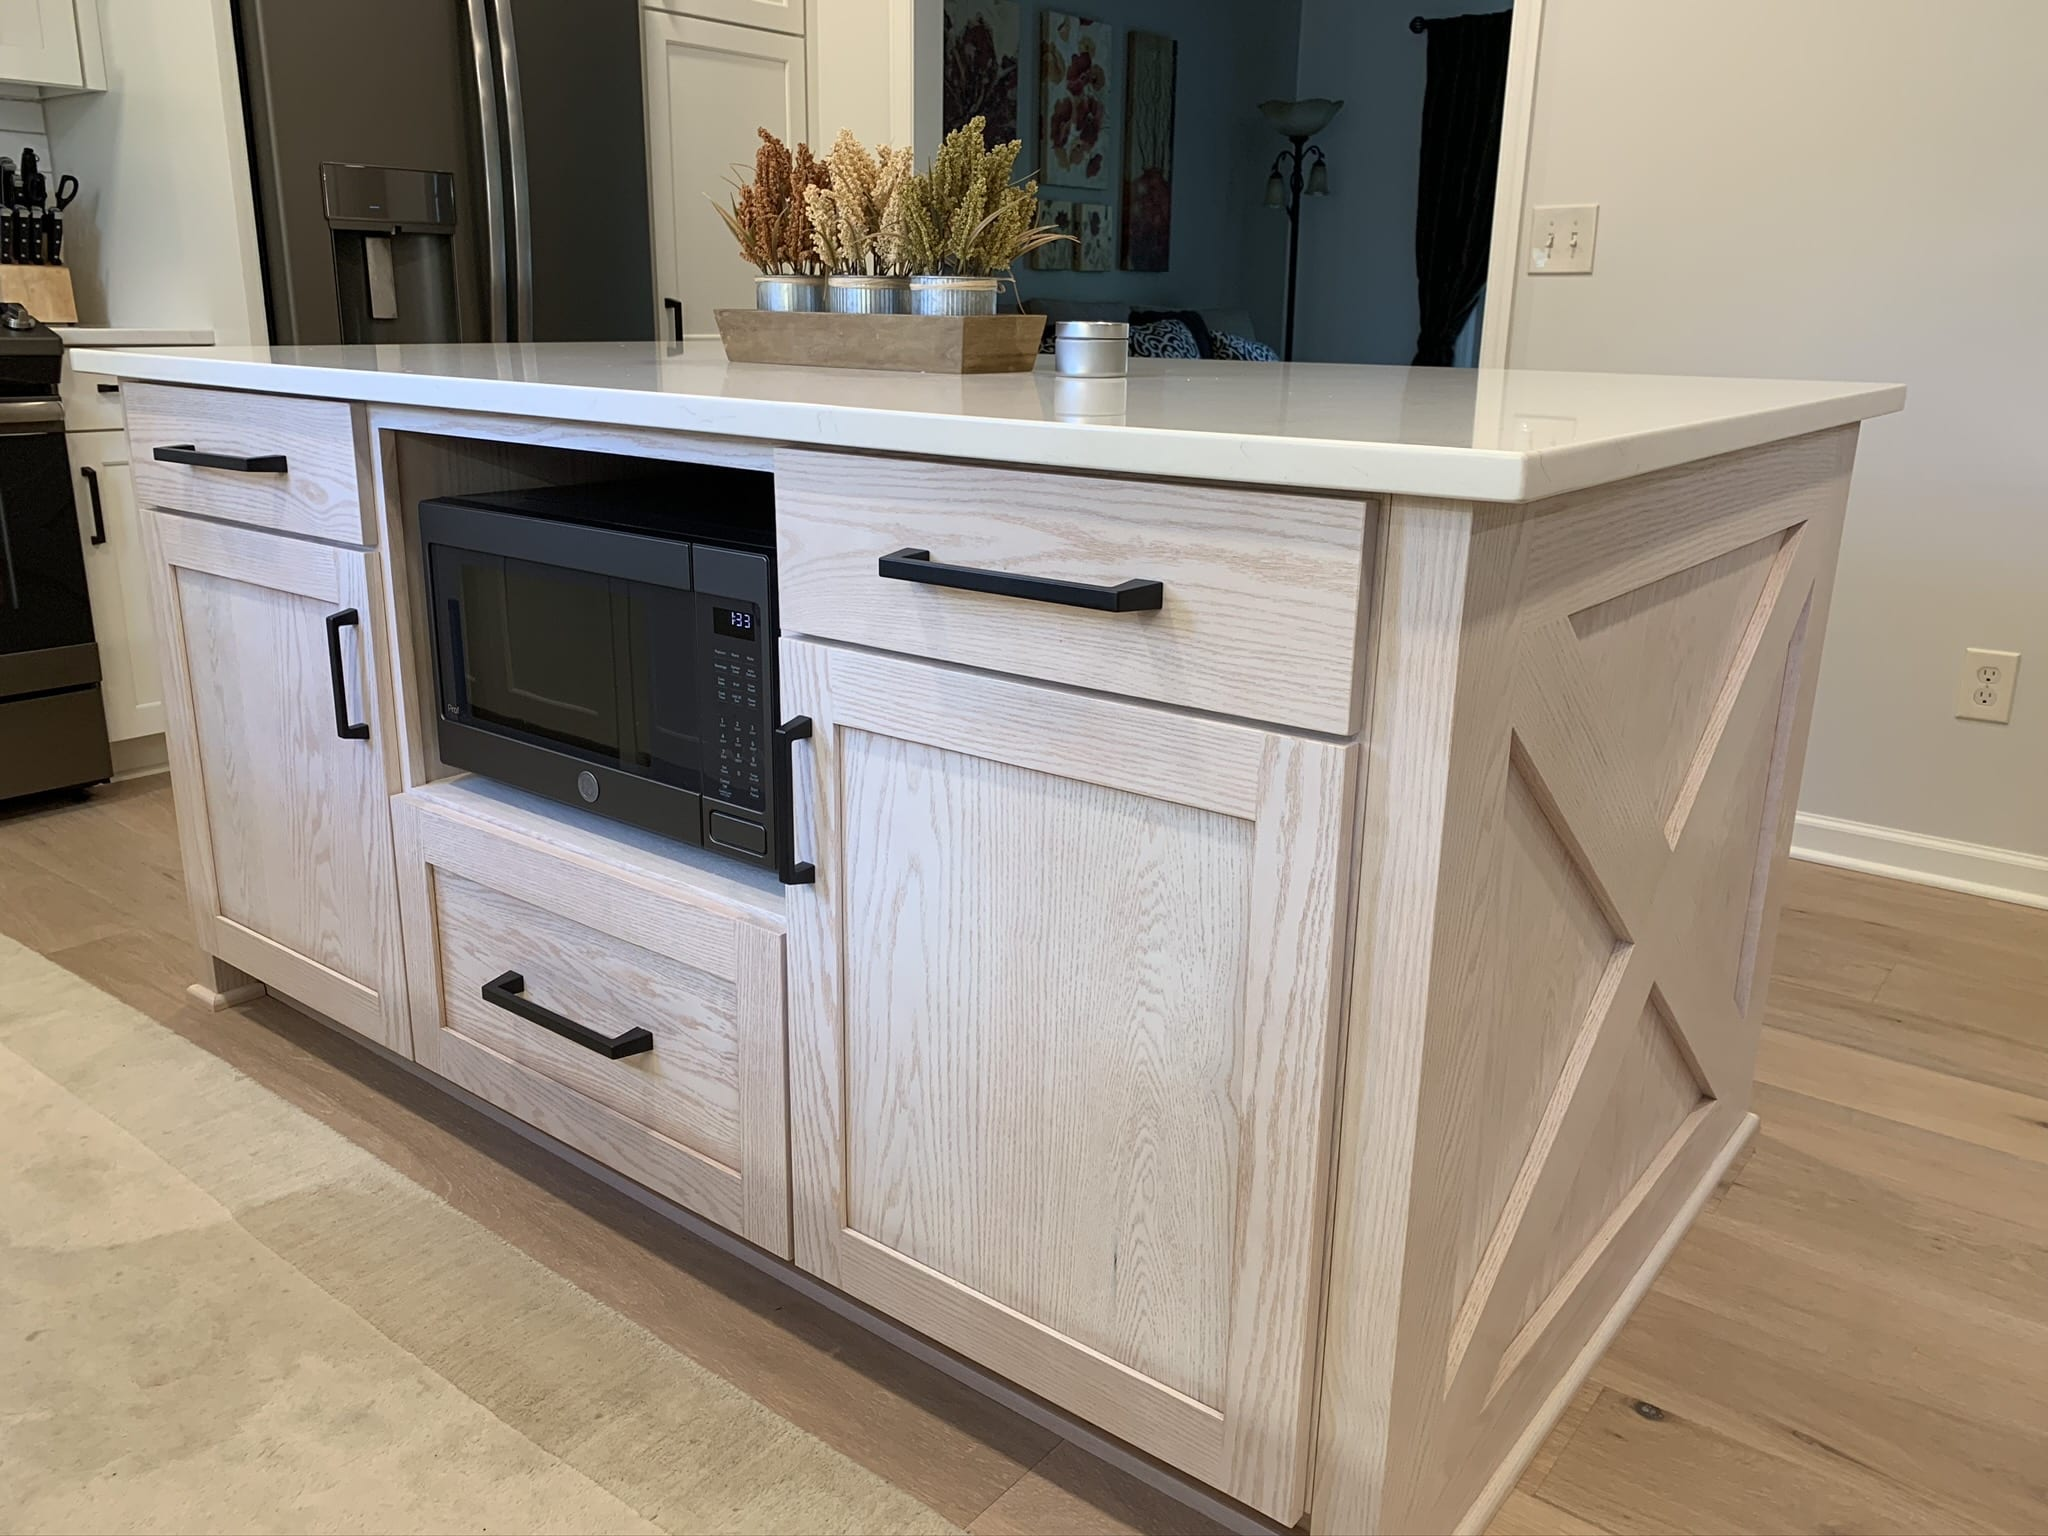 rustic kitchen island with unpainted cabinets and fall plant decor on top